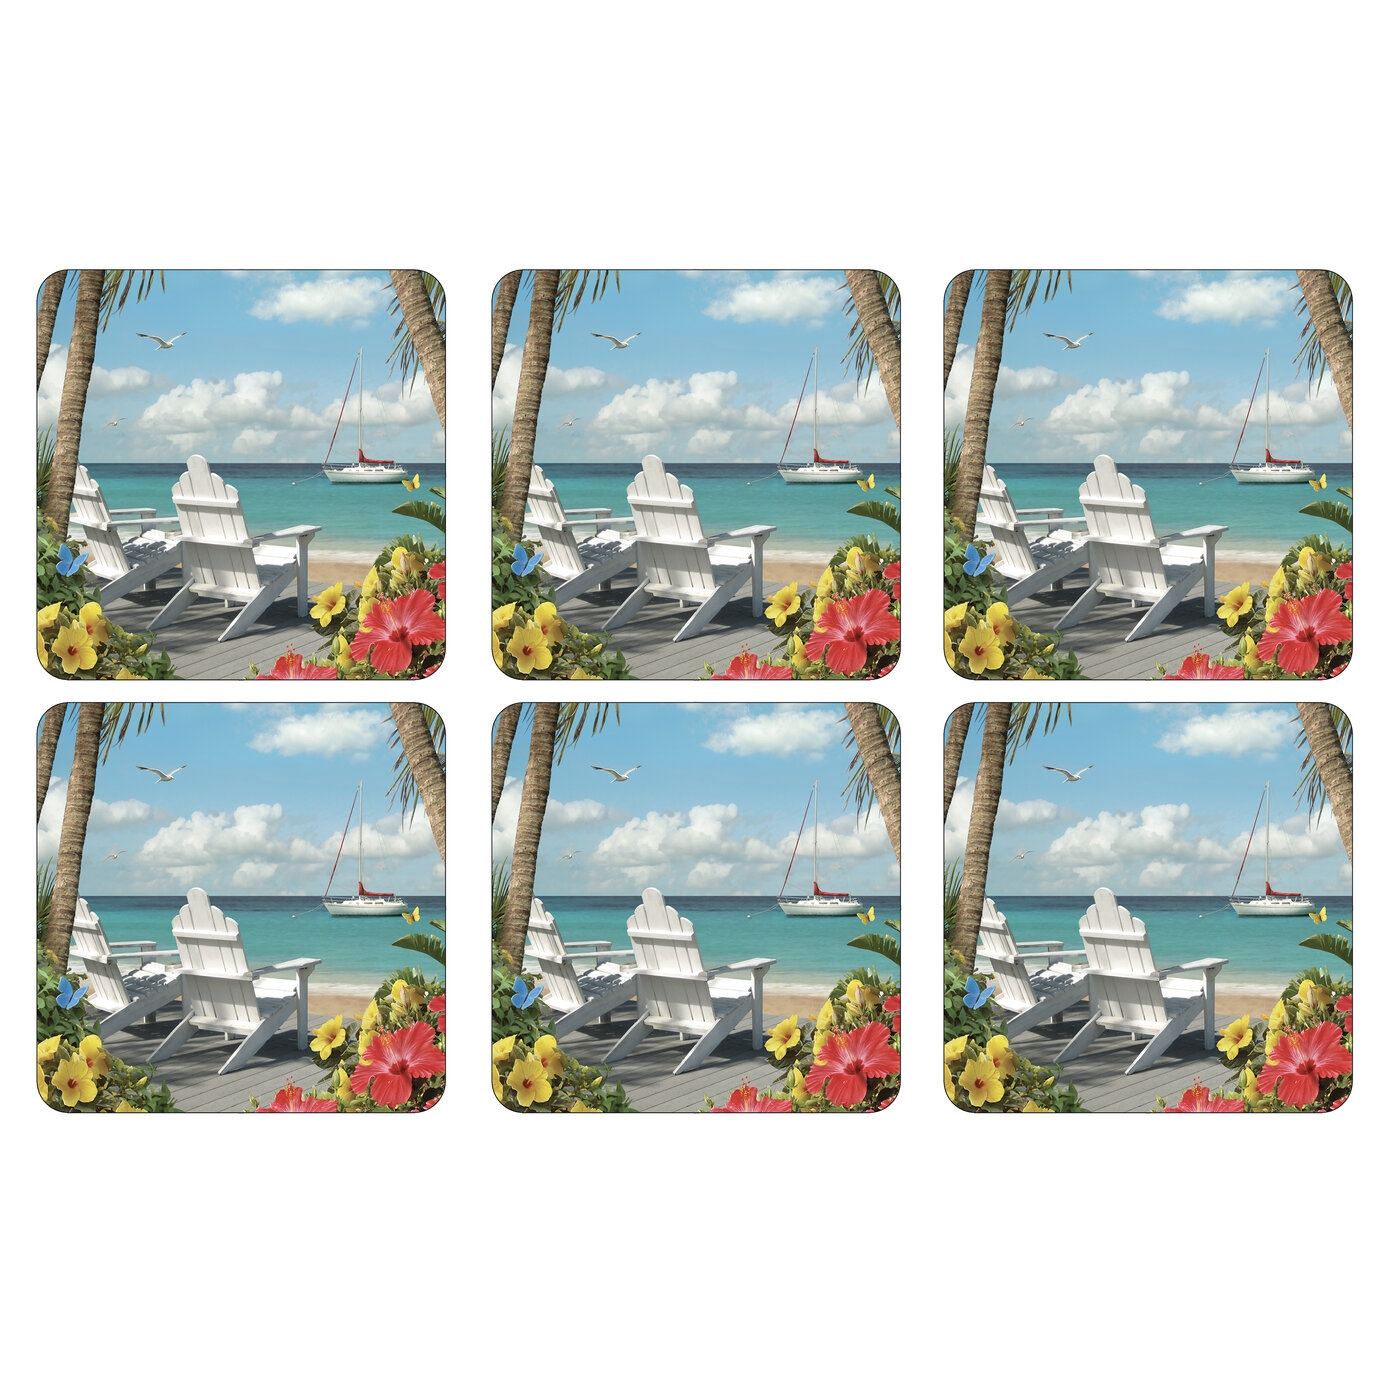 Pimpernel In The Sunshine Coasters Set of 6 image number 0